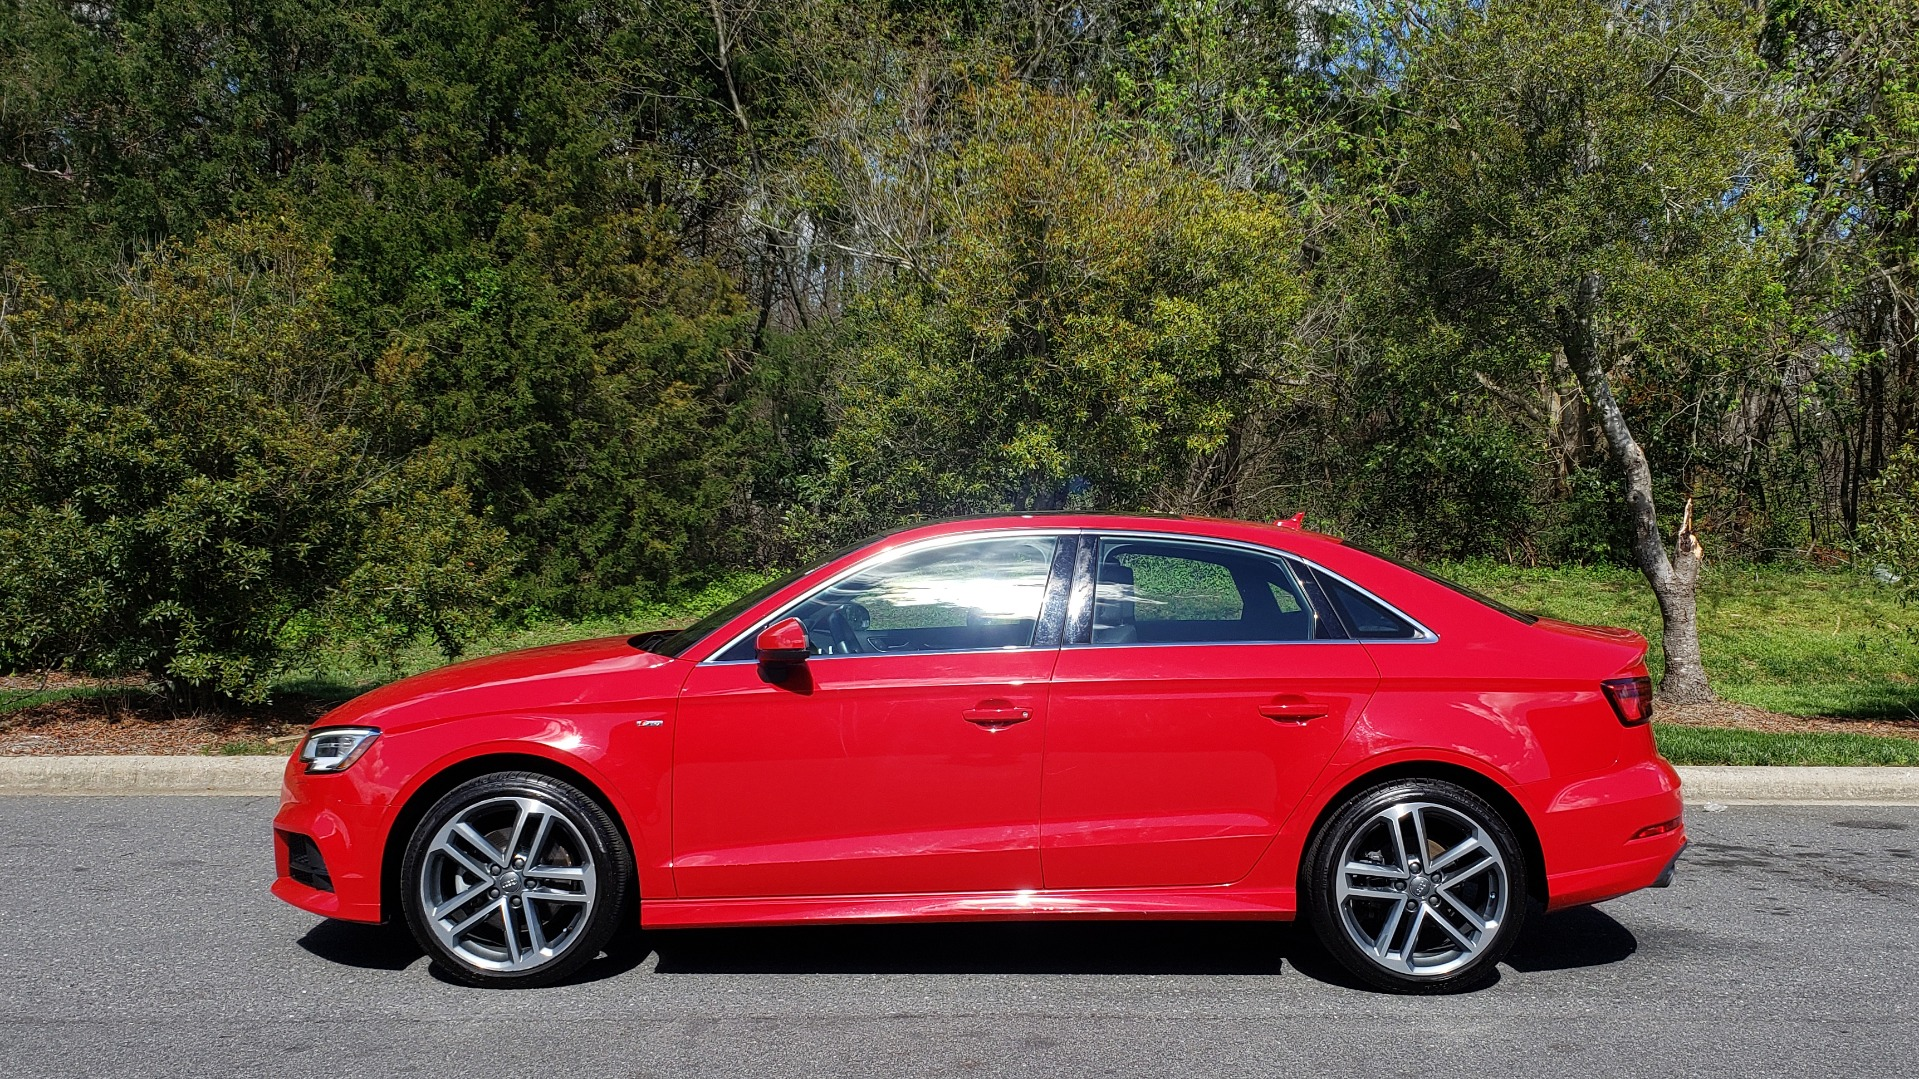 Used 2017 Audi A3 SEDAN PREMIUM PLUS / S-TRONIC / NAV / TECH / SUNROOF / REARVIEW for sale Sold at Formula Imports in Charlotte NC 28227 2